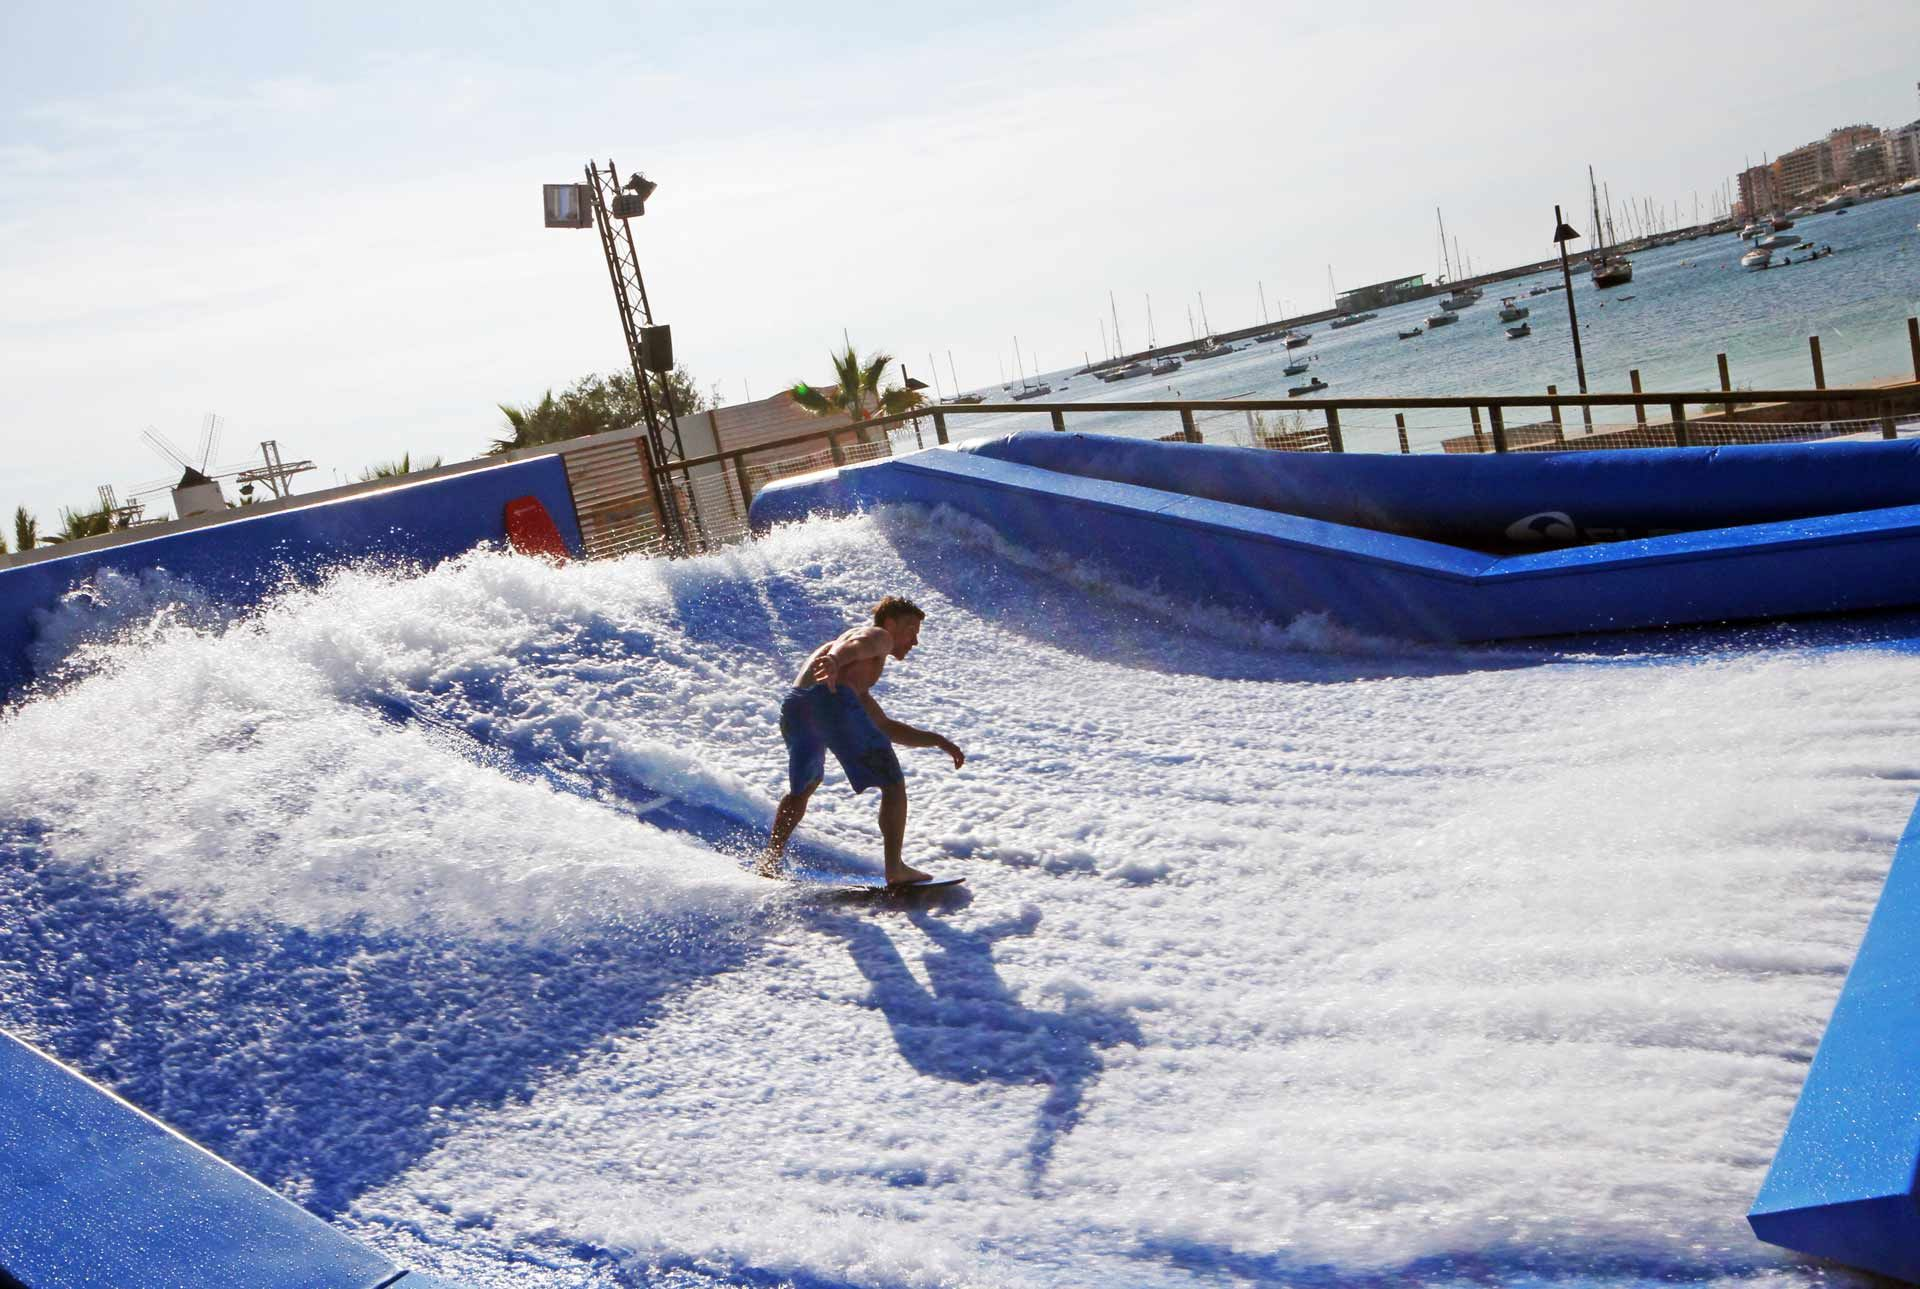 Located In San Antonio Bay Next To Ocean Beach Club You Will Find Ibiza S Only Artificial Wave Machine The Flowrider Can Be Enjoyed By All Surfing Levels With